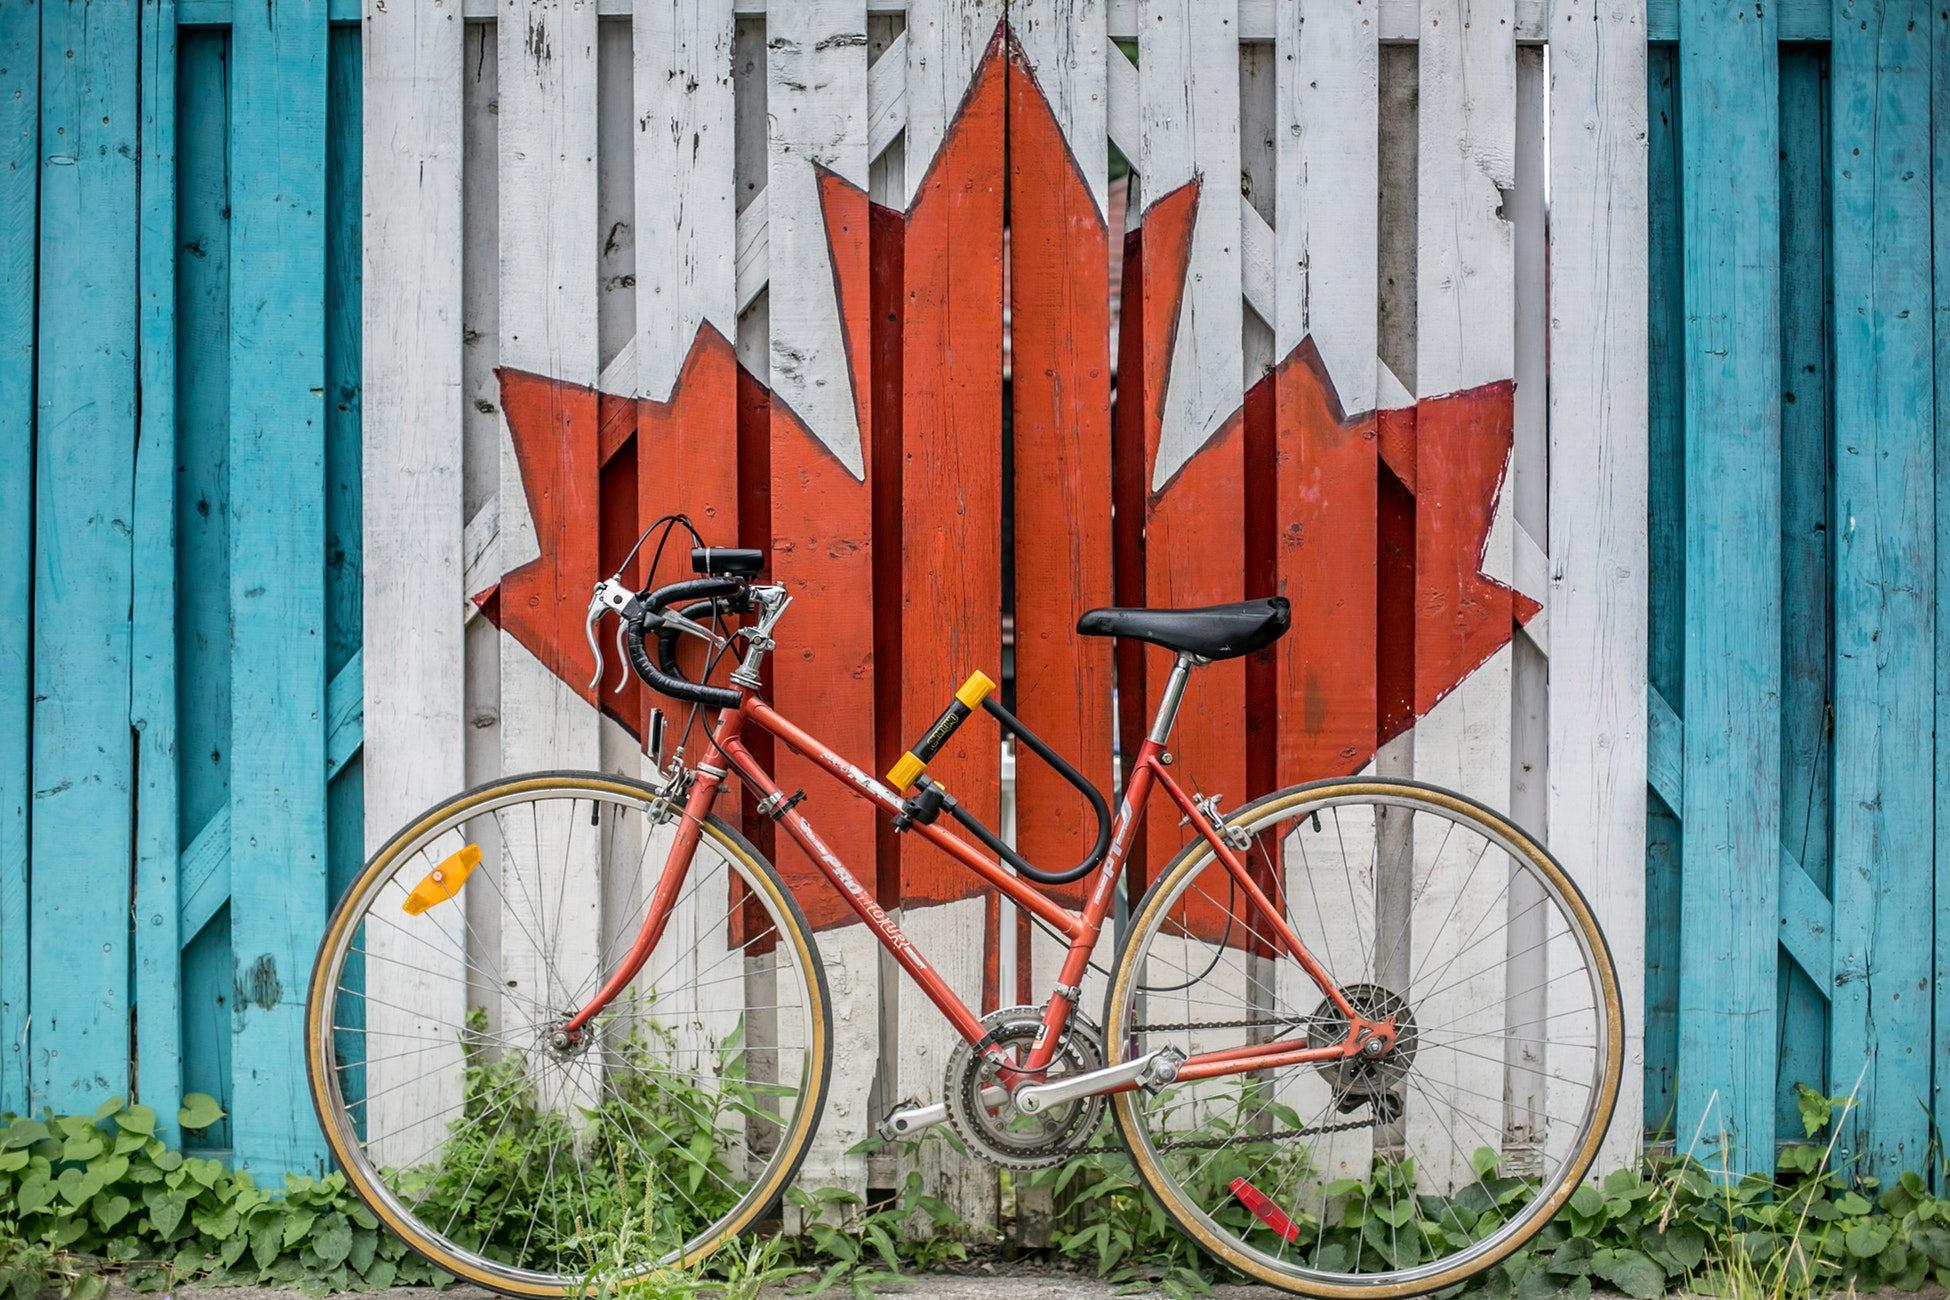 How To Move to Canada – A Guide for Understanding Tariffs in Changing Times